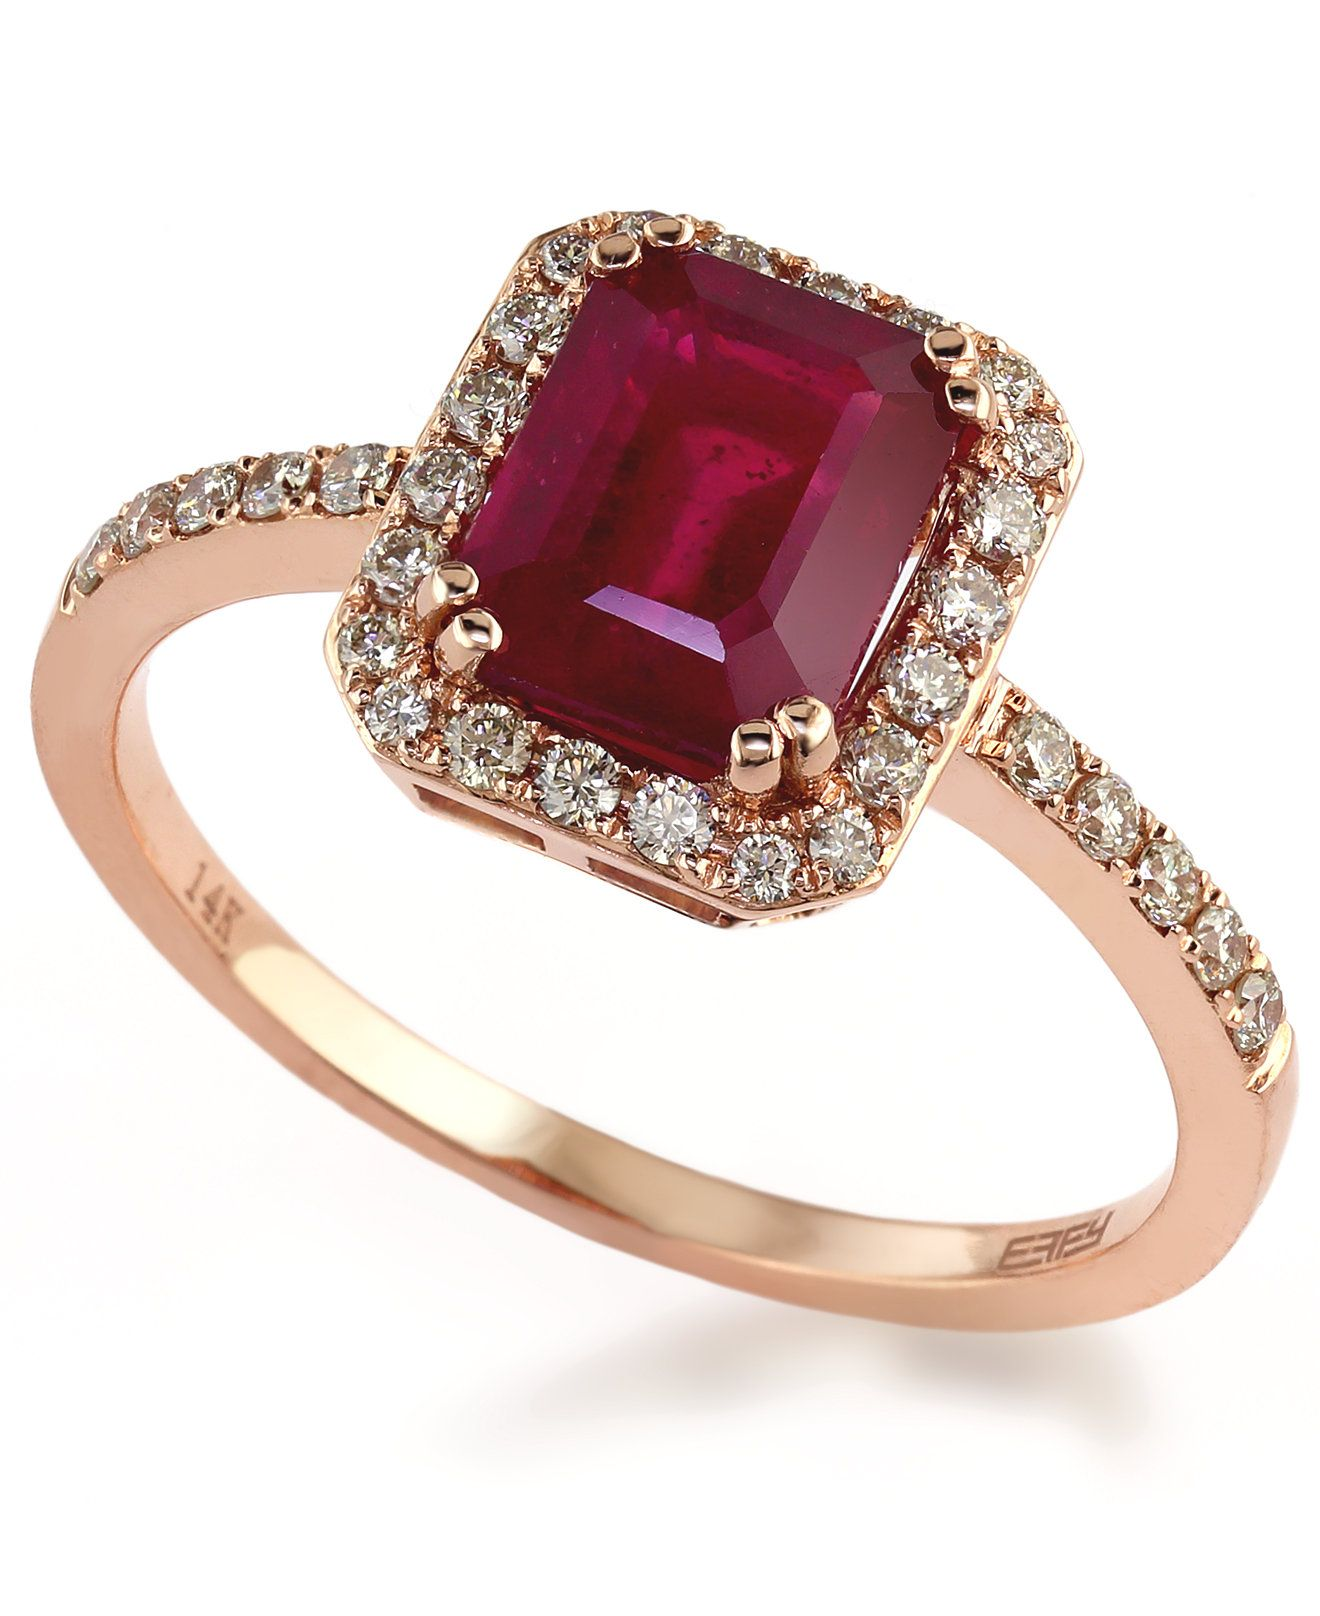 5e91e104e Rosa by EFFY Ruby (1-1/2 ct. t.w.) and Diamond (1/4 ct. t.w.) Ring in 14k  Rose Gold - Rings - Jewelry & Watches - Macy's